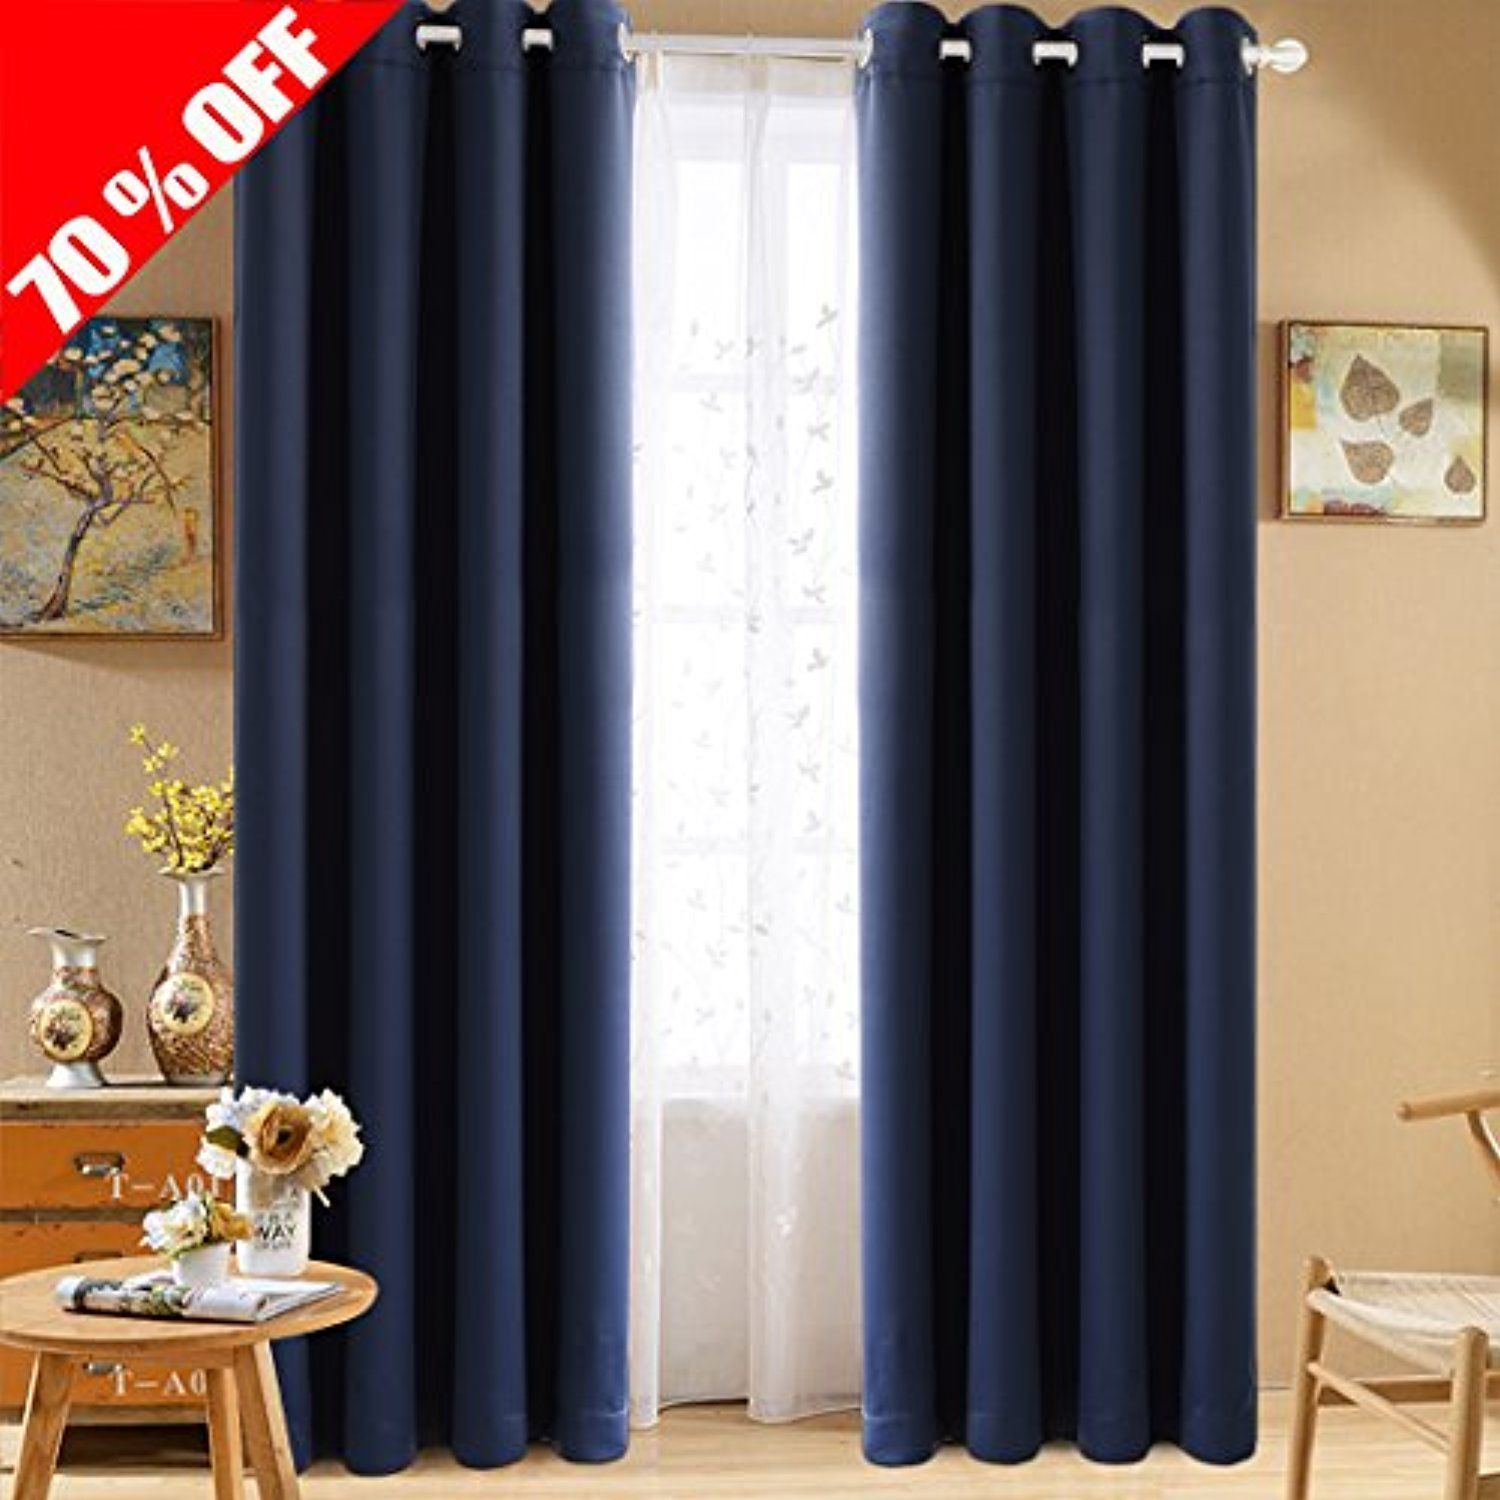 Fairyland blackout curtains and drapes thermal draperies insulated